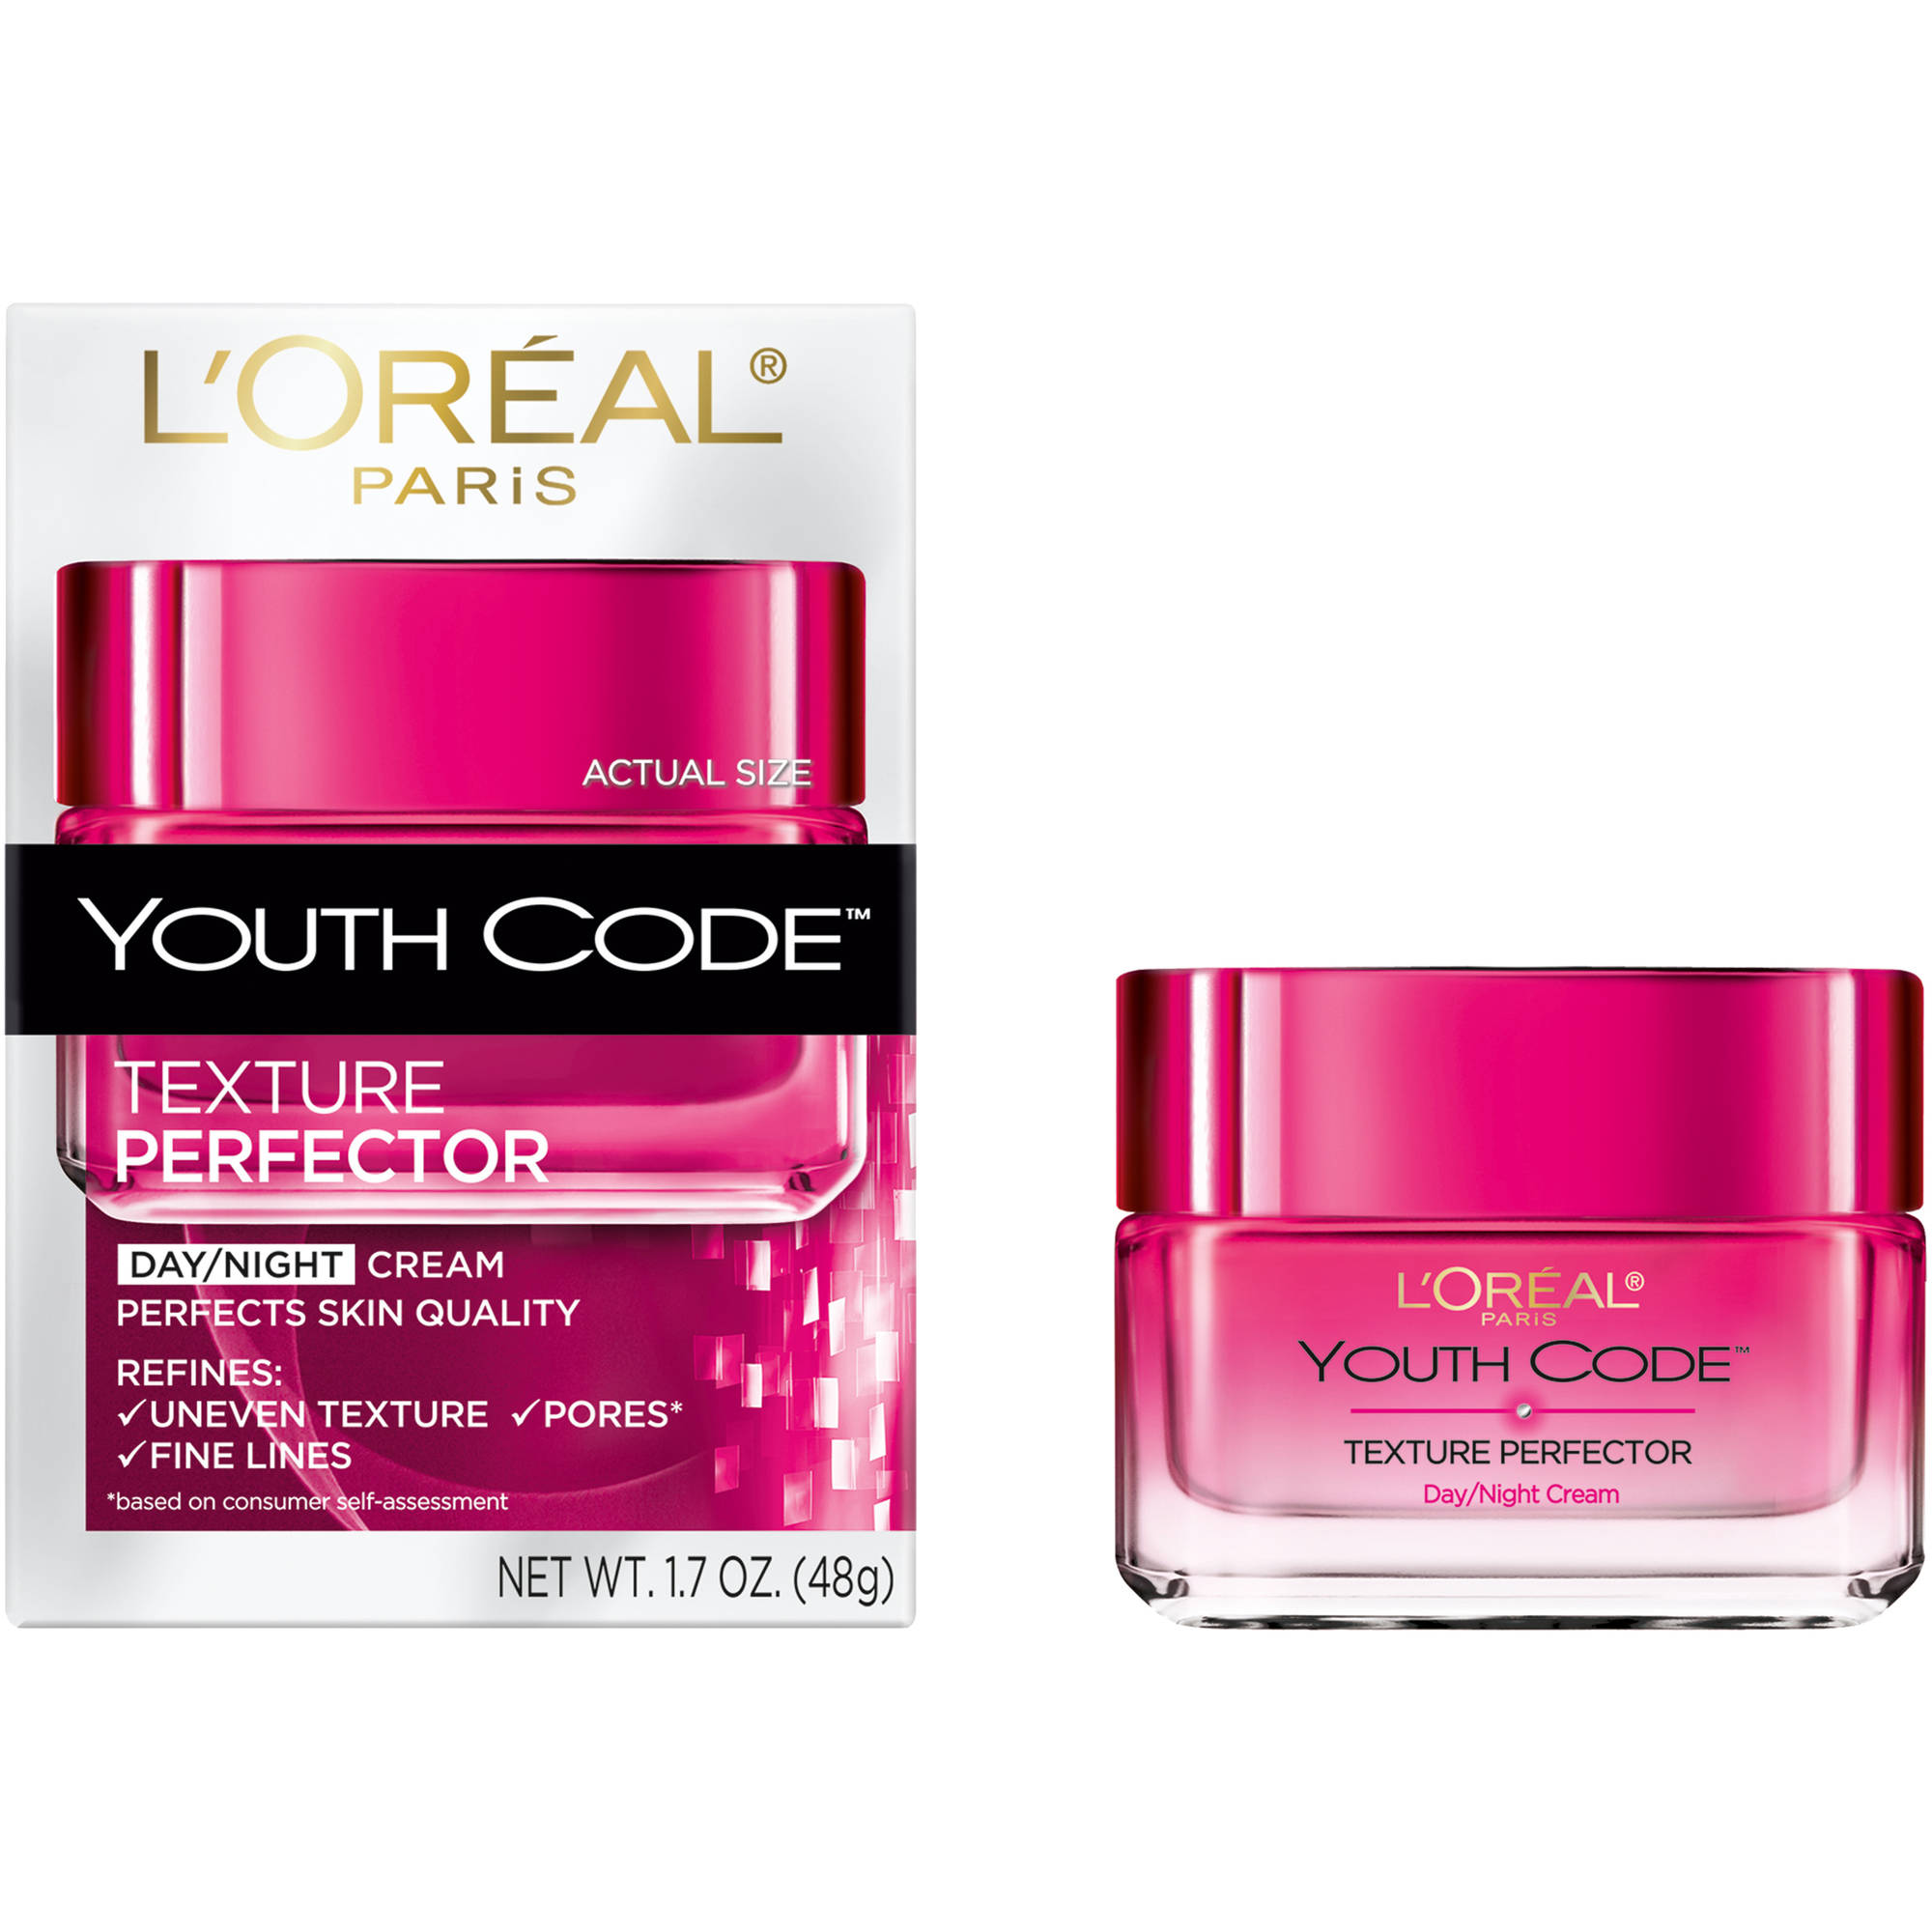 **Discontinued**L'Oreal Paris Youth Code Texture Perfector Day/Night Cream, 1.7 oz